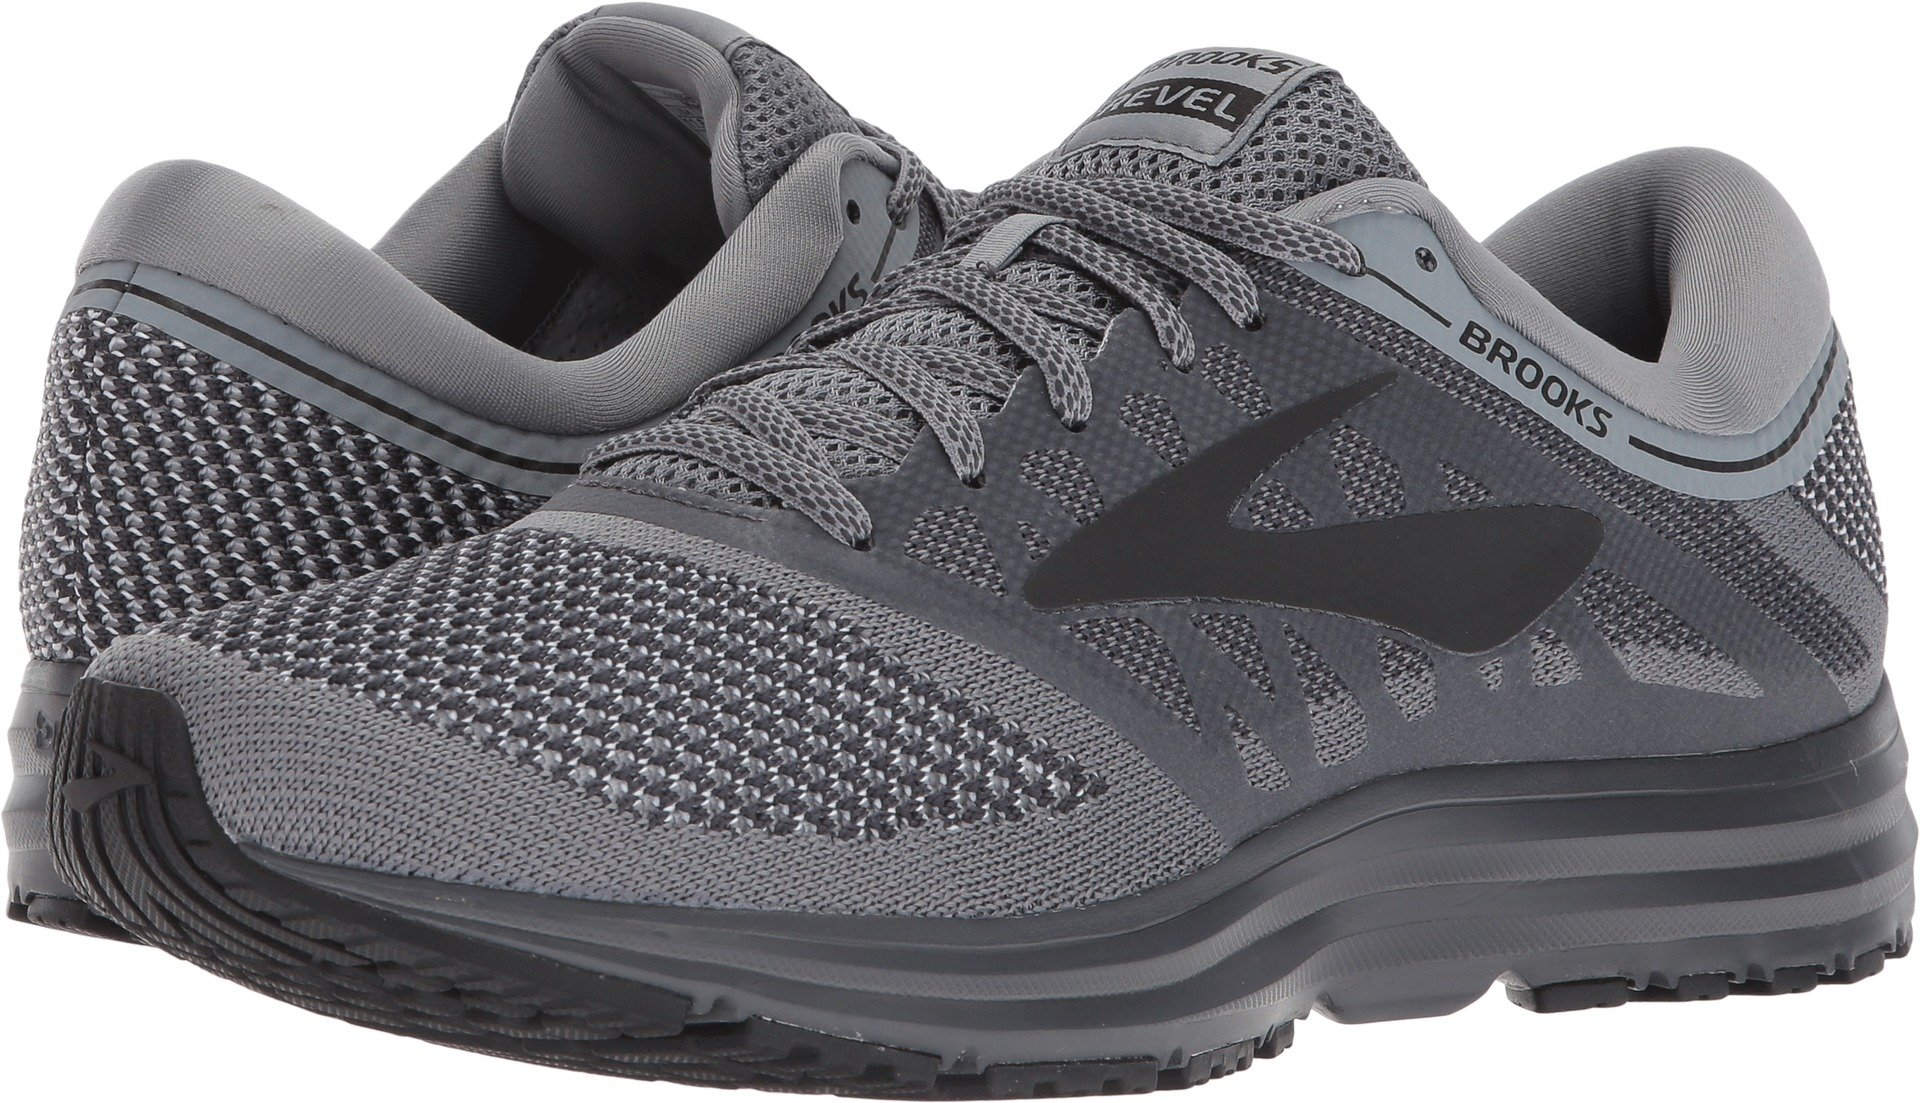 dcff7016d38 Galleon - Brooks Men s Revel Grey Ebony Black 8.5 D US